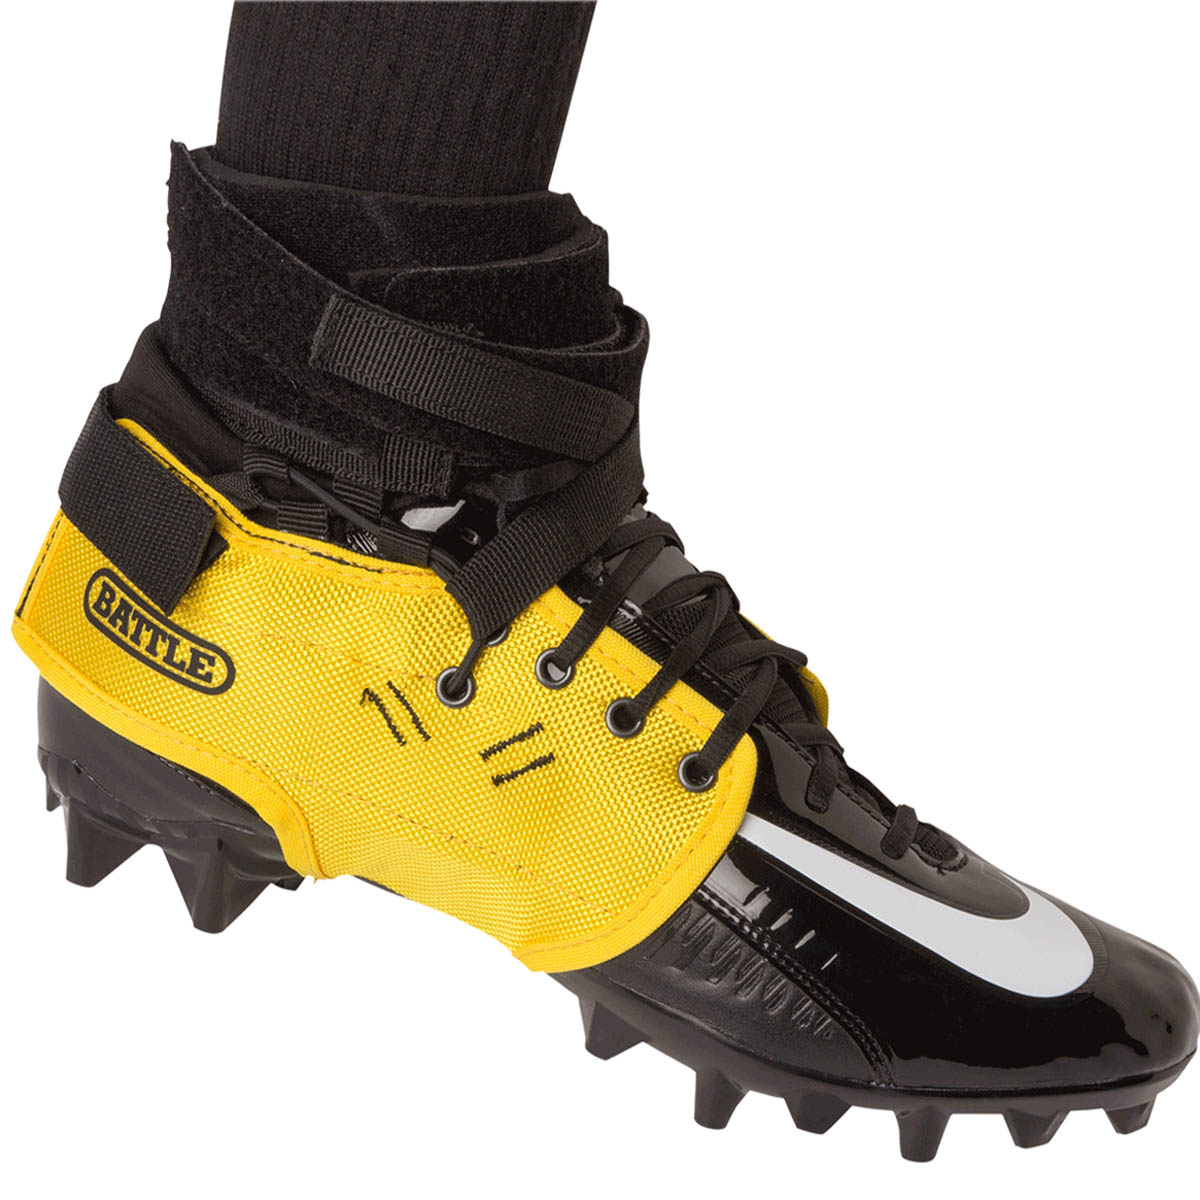 484cd27ac Details about Battle Sports Science XFAST Over the Cleat Ankle Support  System - Yellow